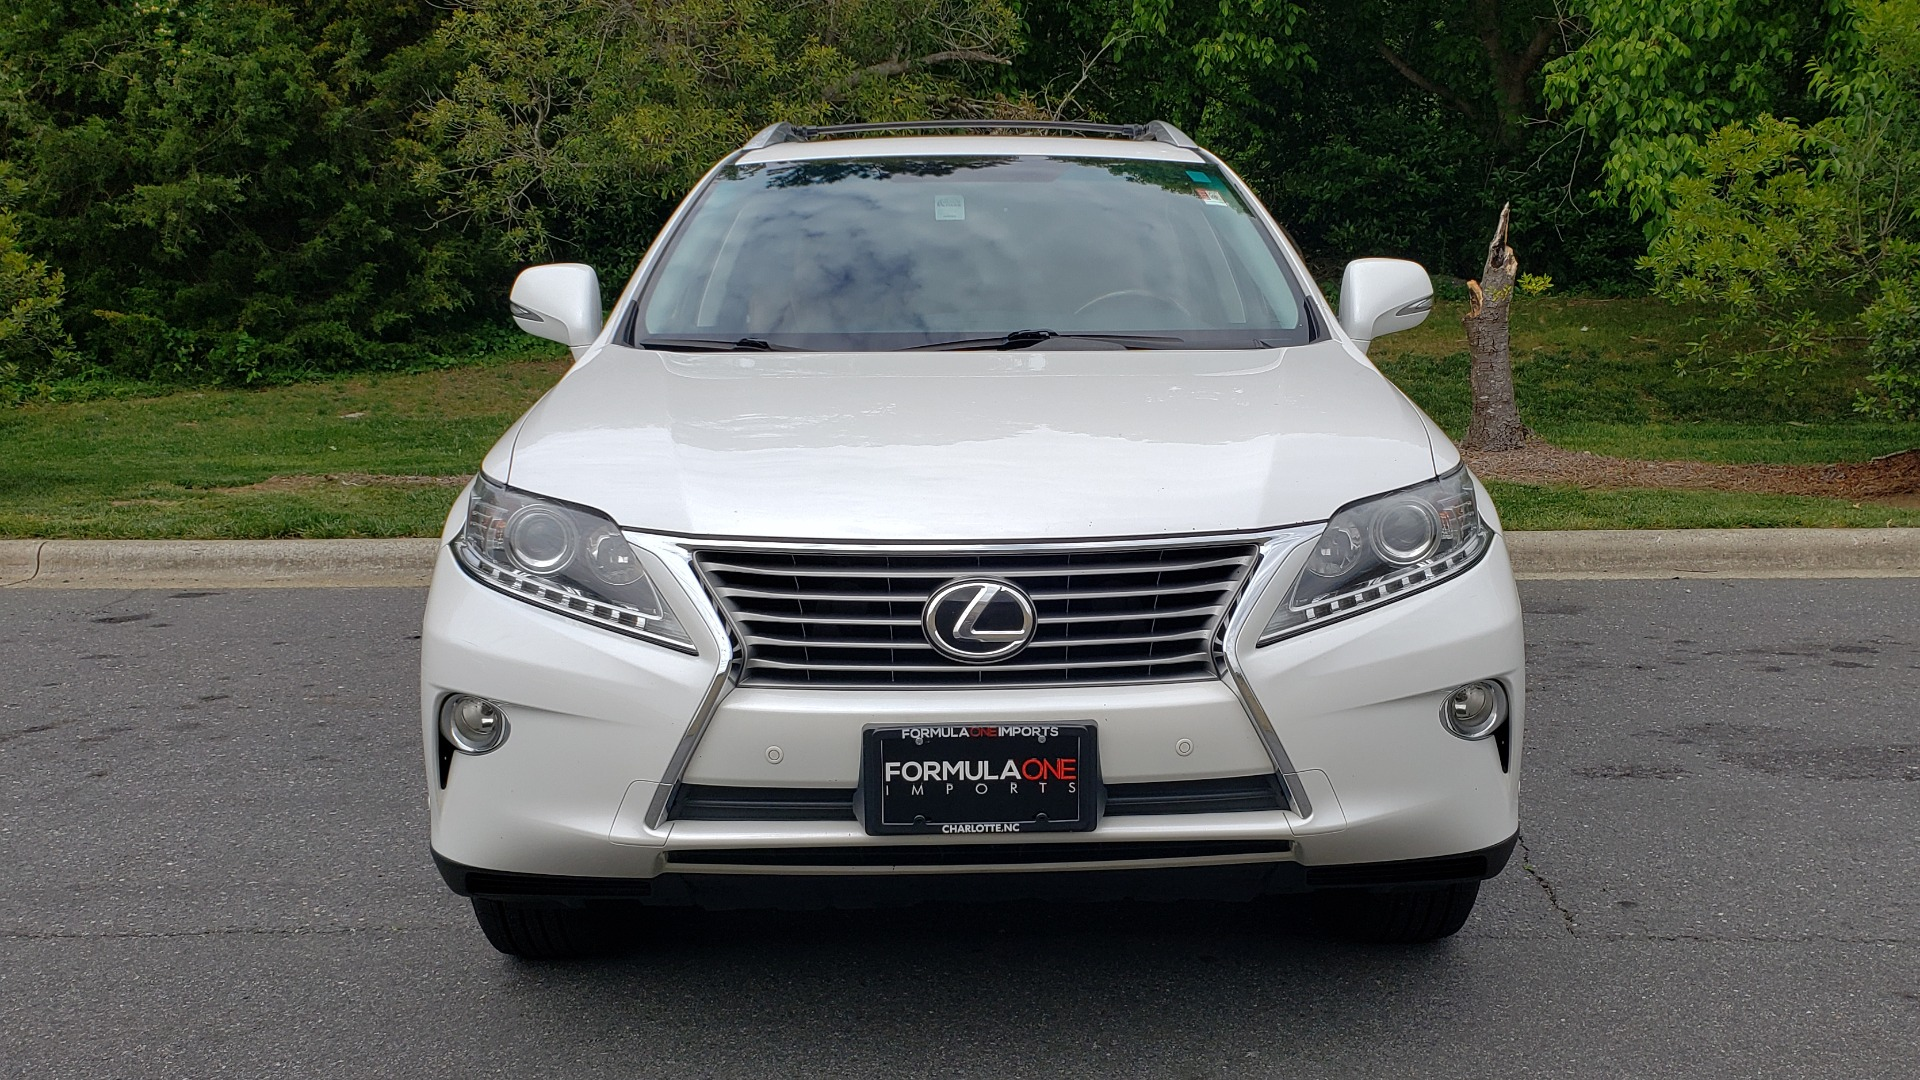 Used 2013 Lexus RX 350 PREMIUM PKG / SUNROOF / BSM / PARK ASST / REARVIEW for sale Sold at Formula Imports in Charlotte NC 28227 20